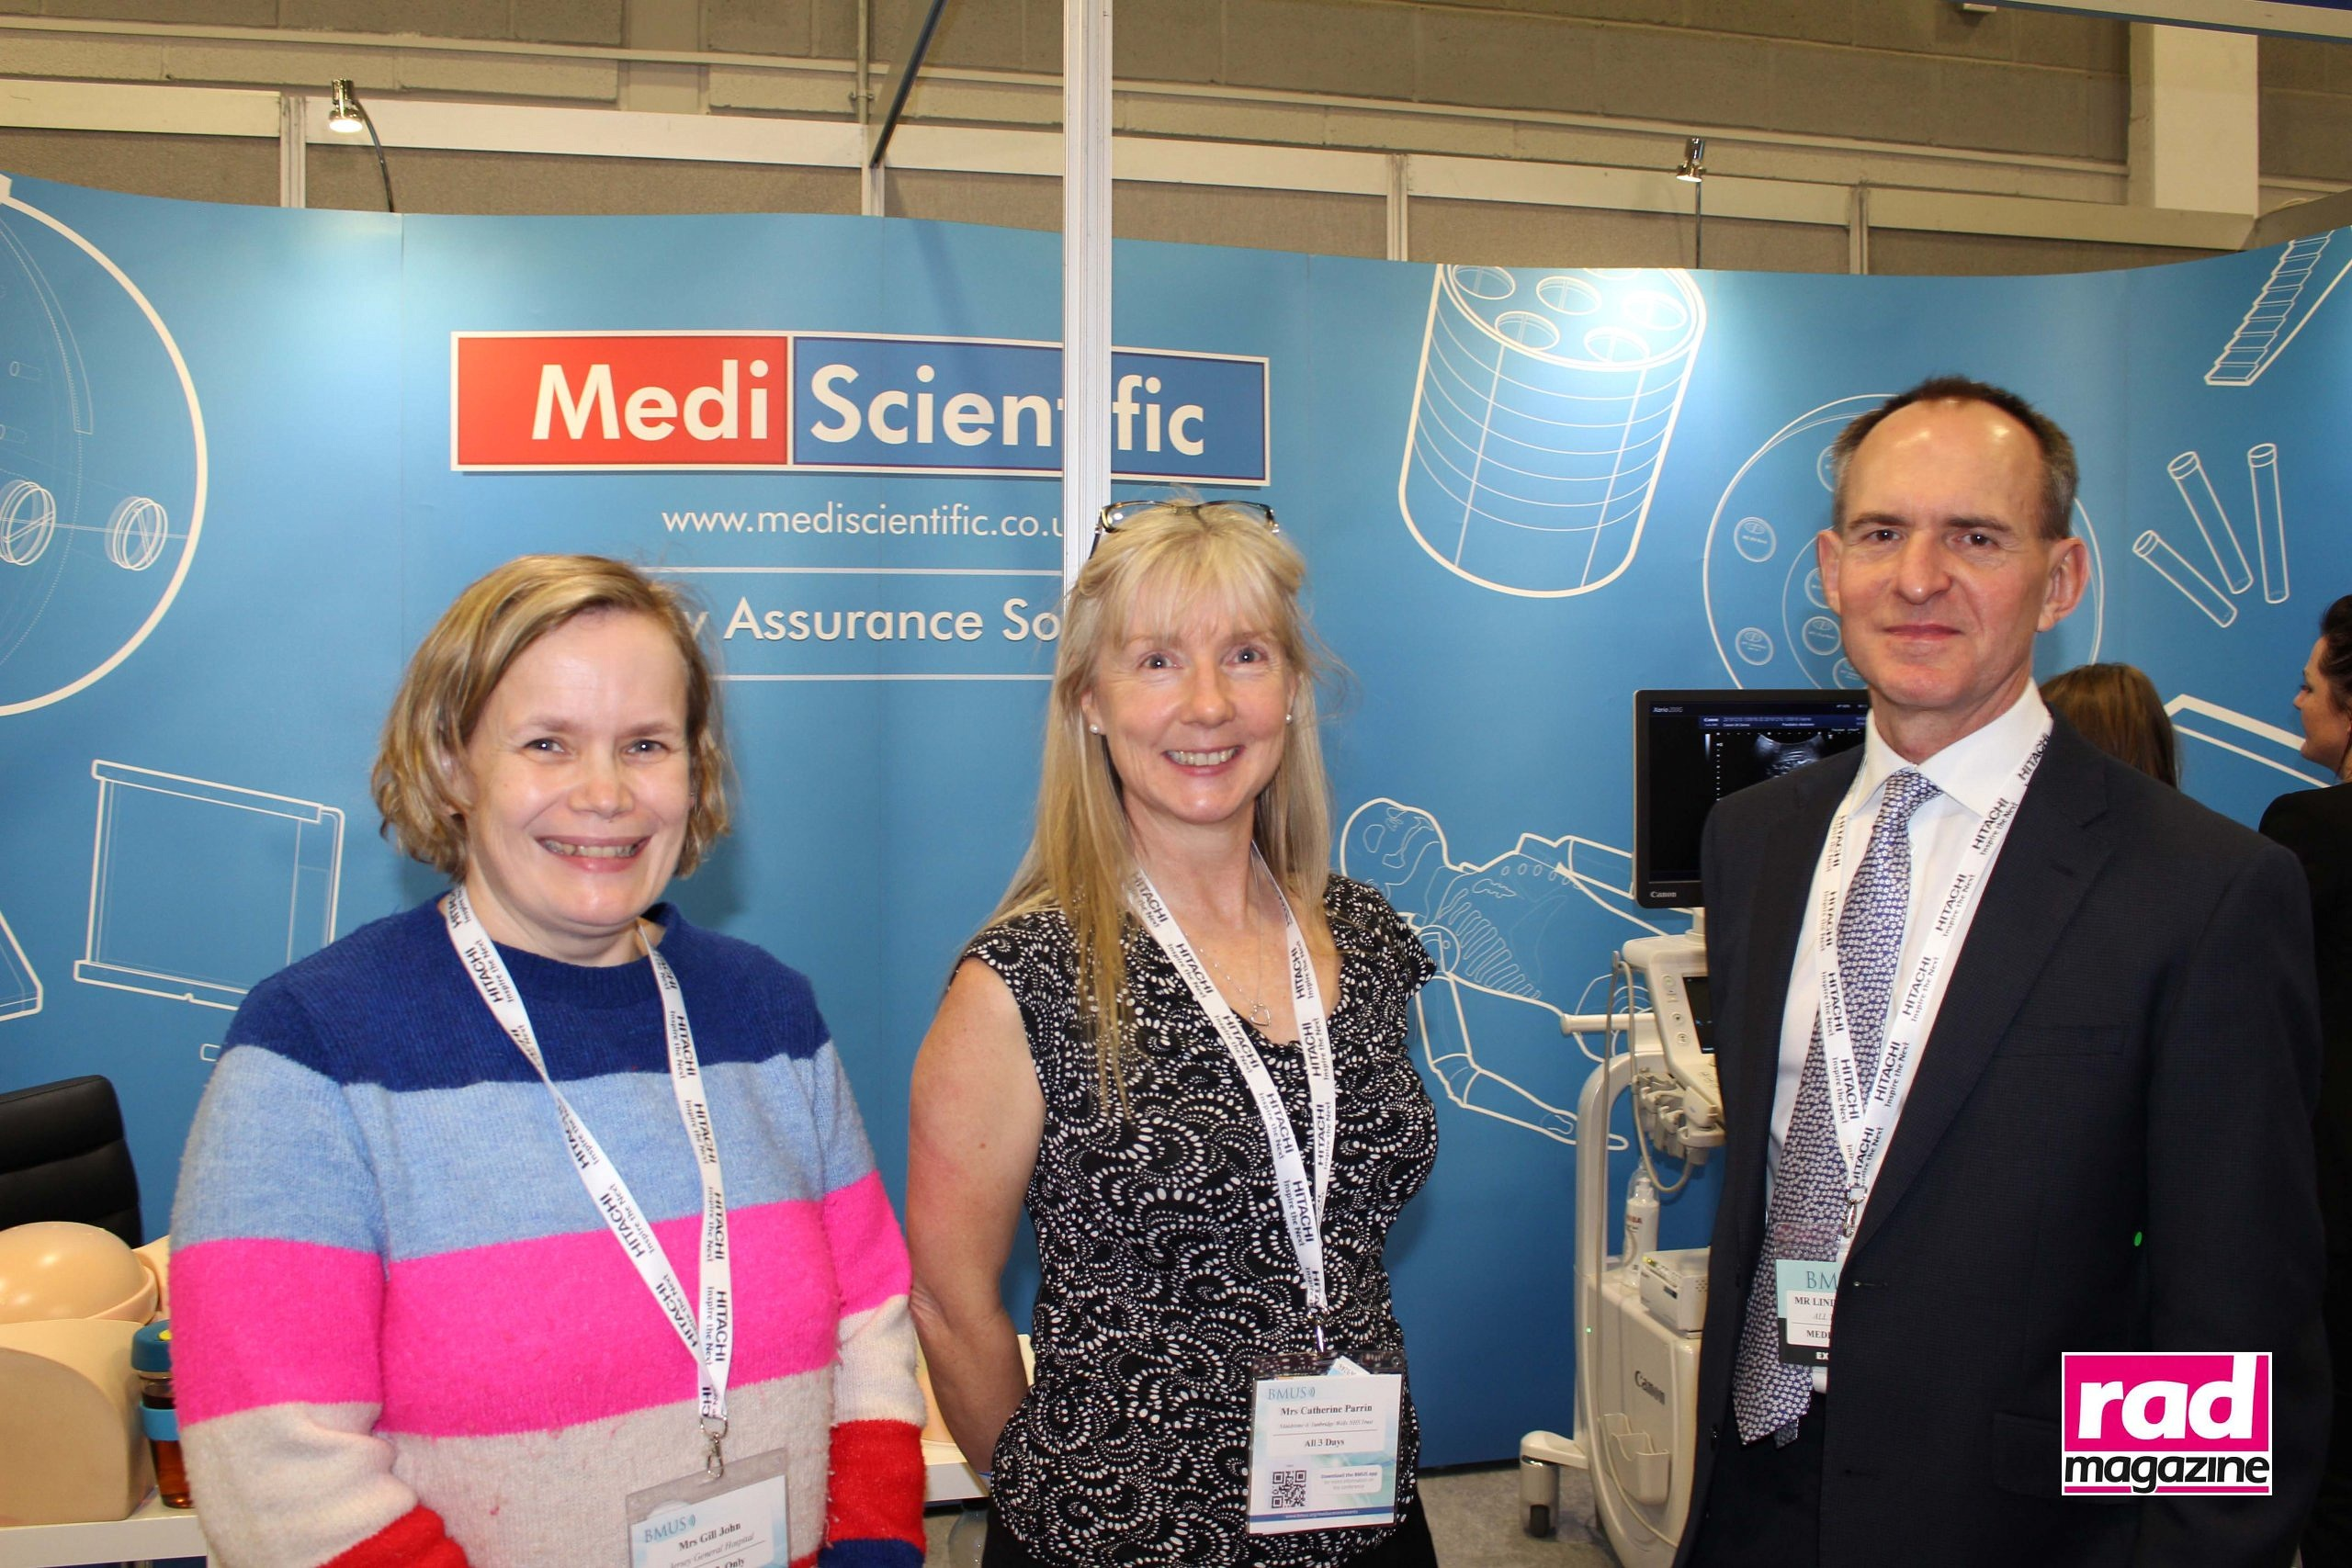 MediScientific at BMUS 2019